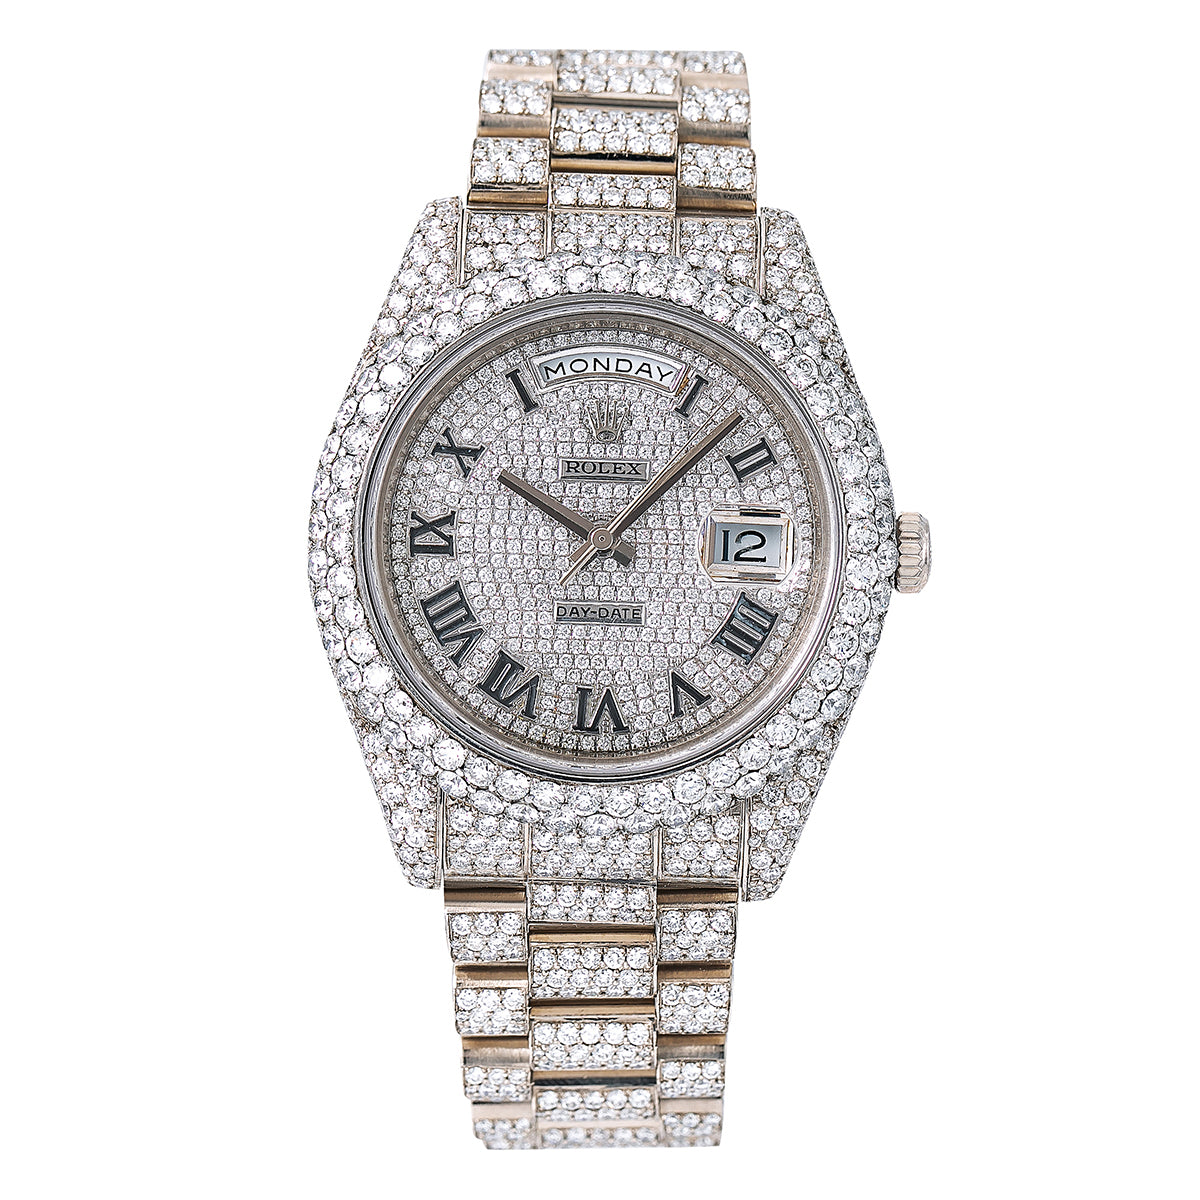 Rolex Day-Date II 218239 41MM Silver Diamond Dial With 18K White Gold Bracelet